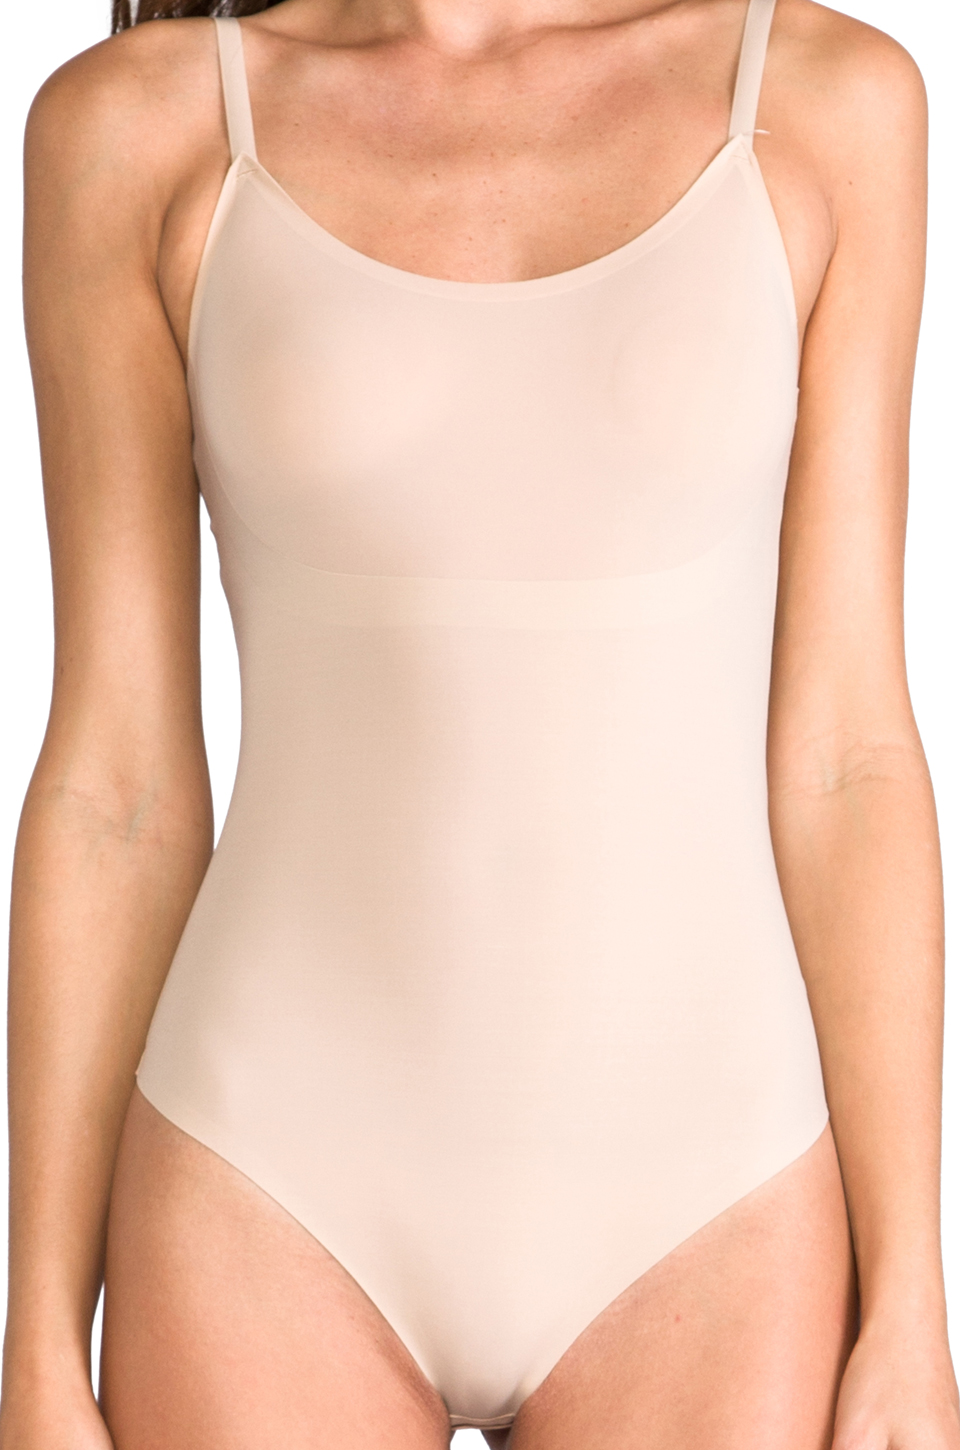 SPANX Trust Your Thin-stincts Thong Bodysuit in Natural